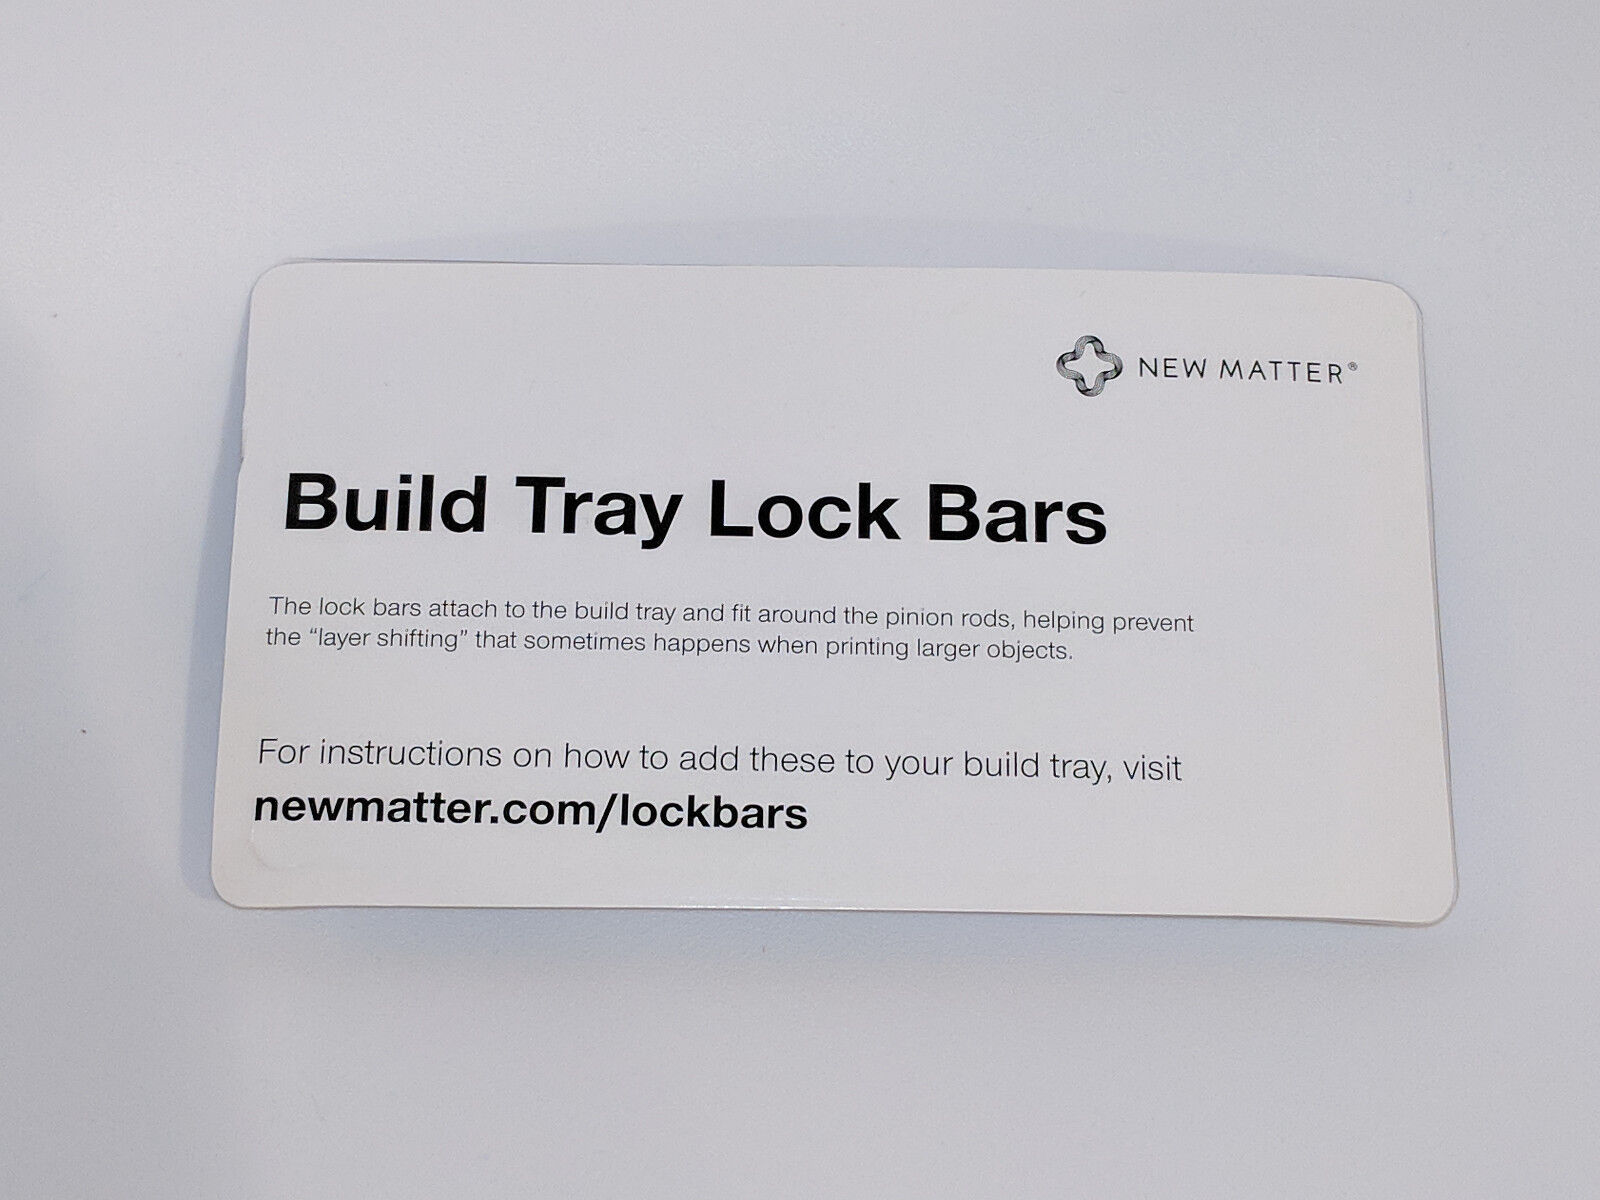 Build Tray Lock Bars for New Matter MOD-t 3D Printer, New in